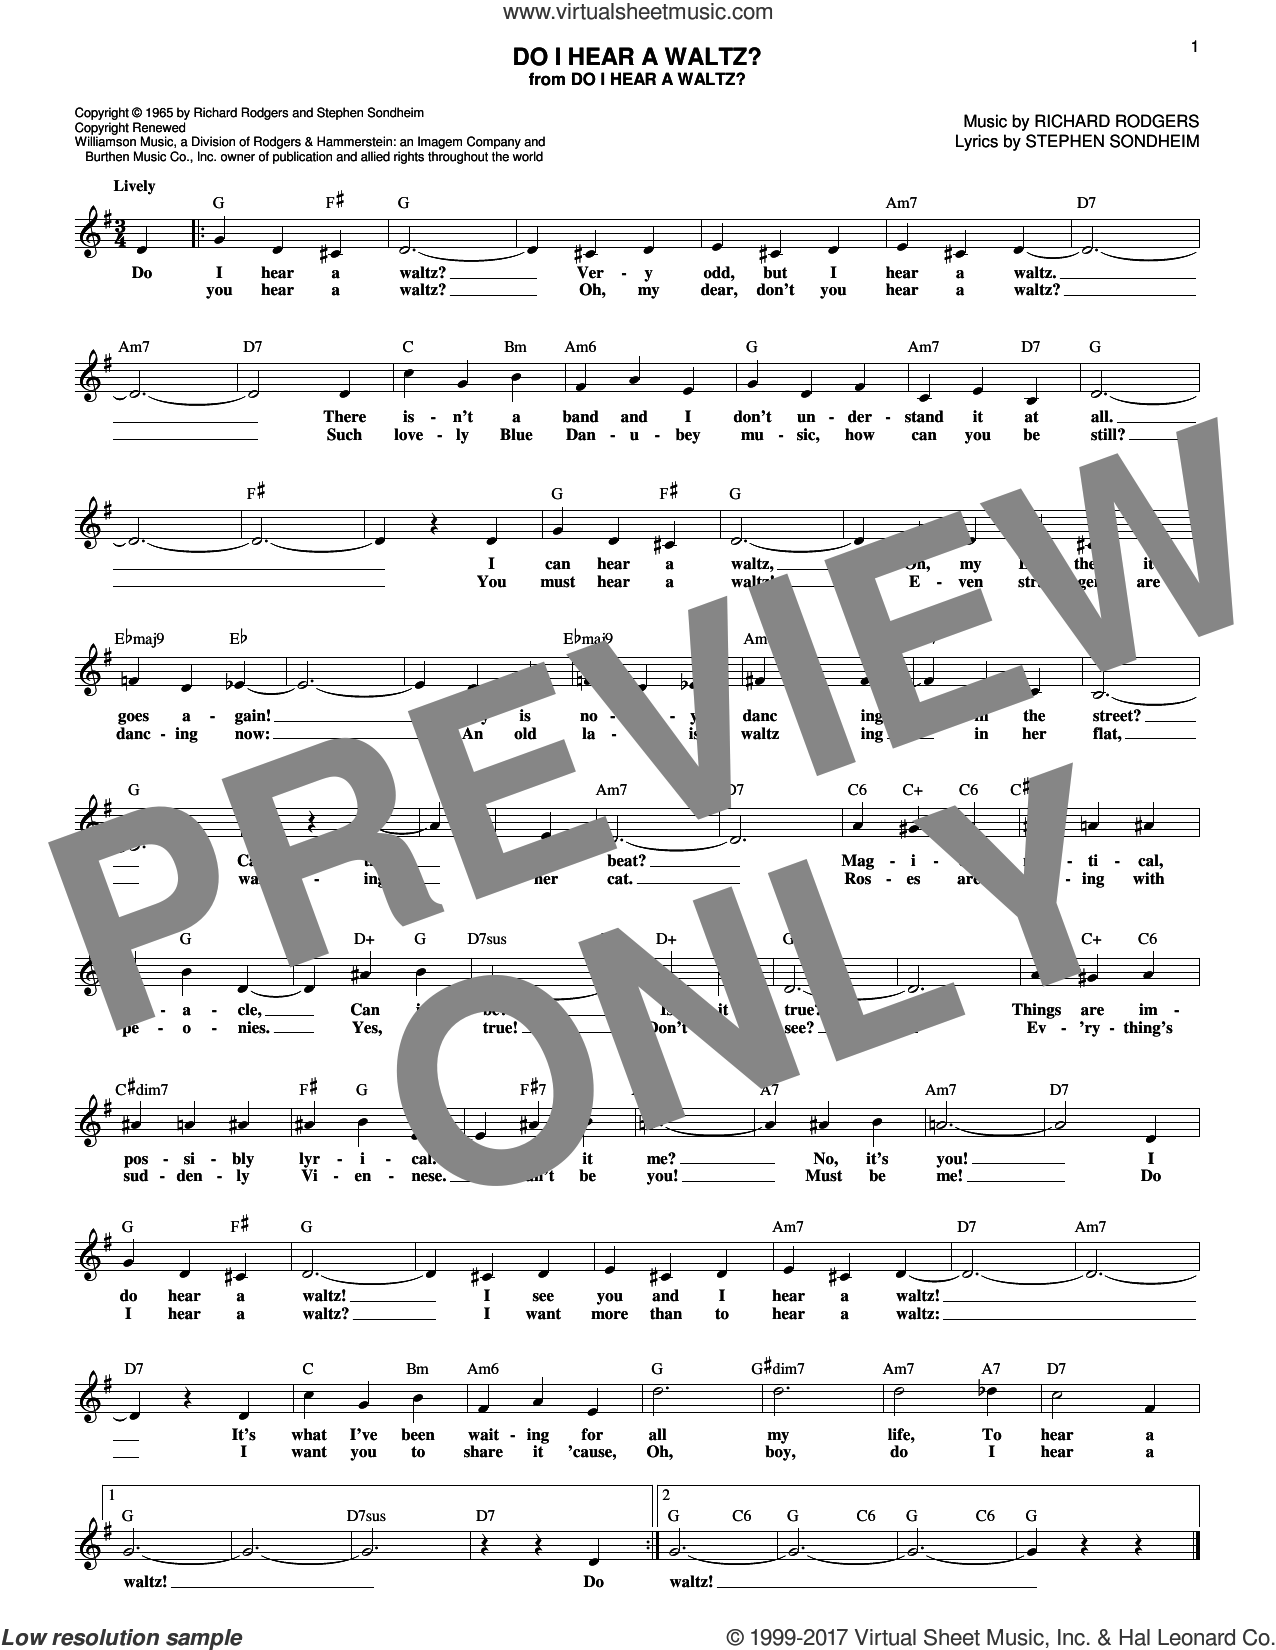 Do I Hear A Waltz? sheet music for voice and other instruments (fake book) by Richard Rodgers and Stephen Sondheim, intermediate skill level